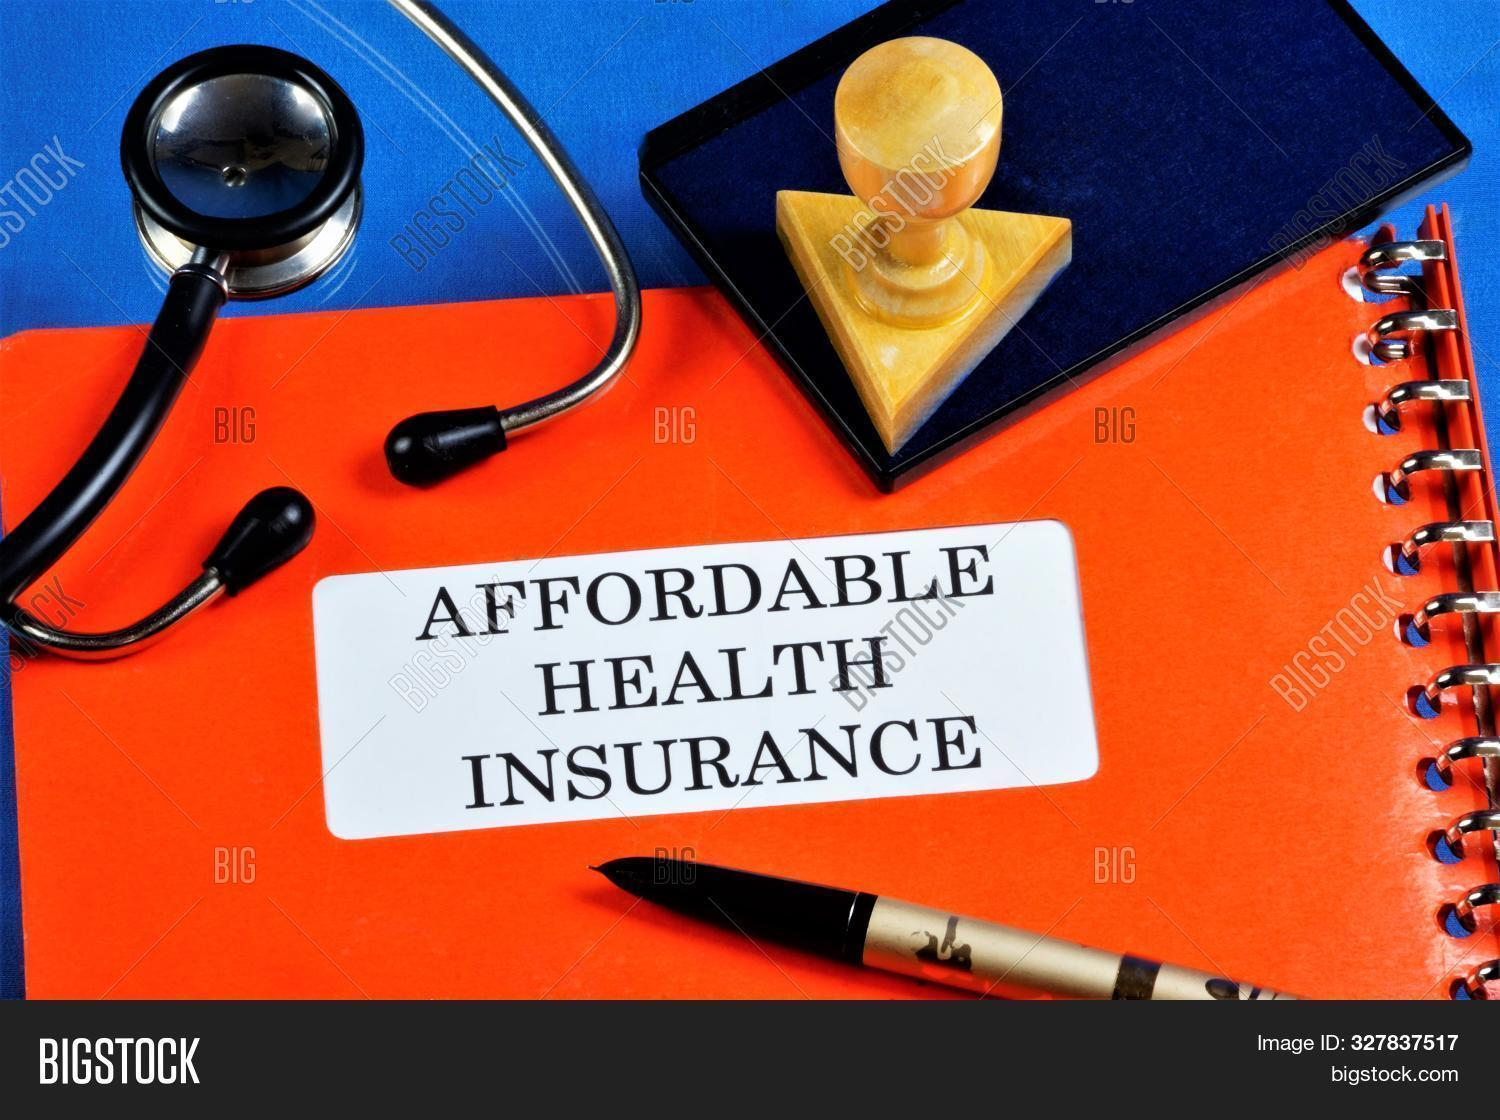 Deposit,Fund,Health,available,conclusion,confirms,contract,document,financial,insurance,issued,personal,policy,premium,provides,well-being